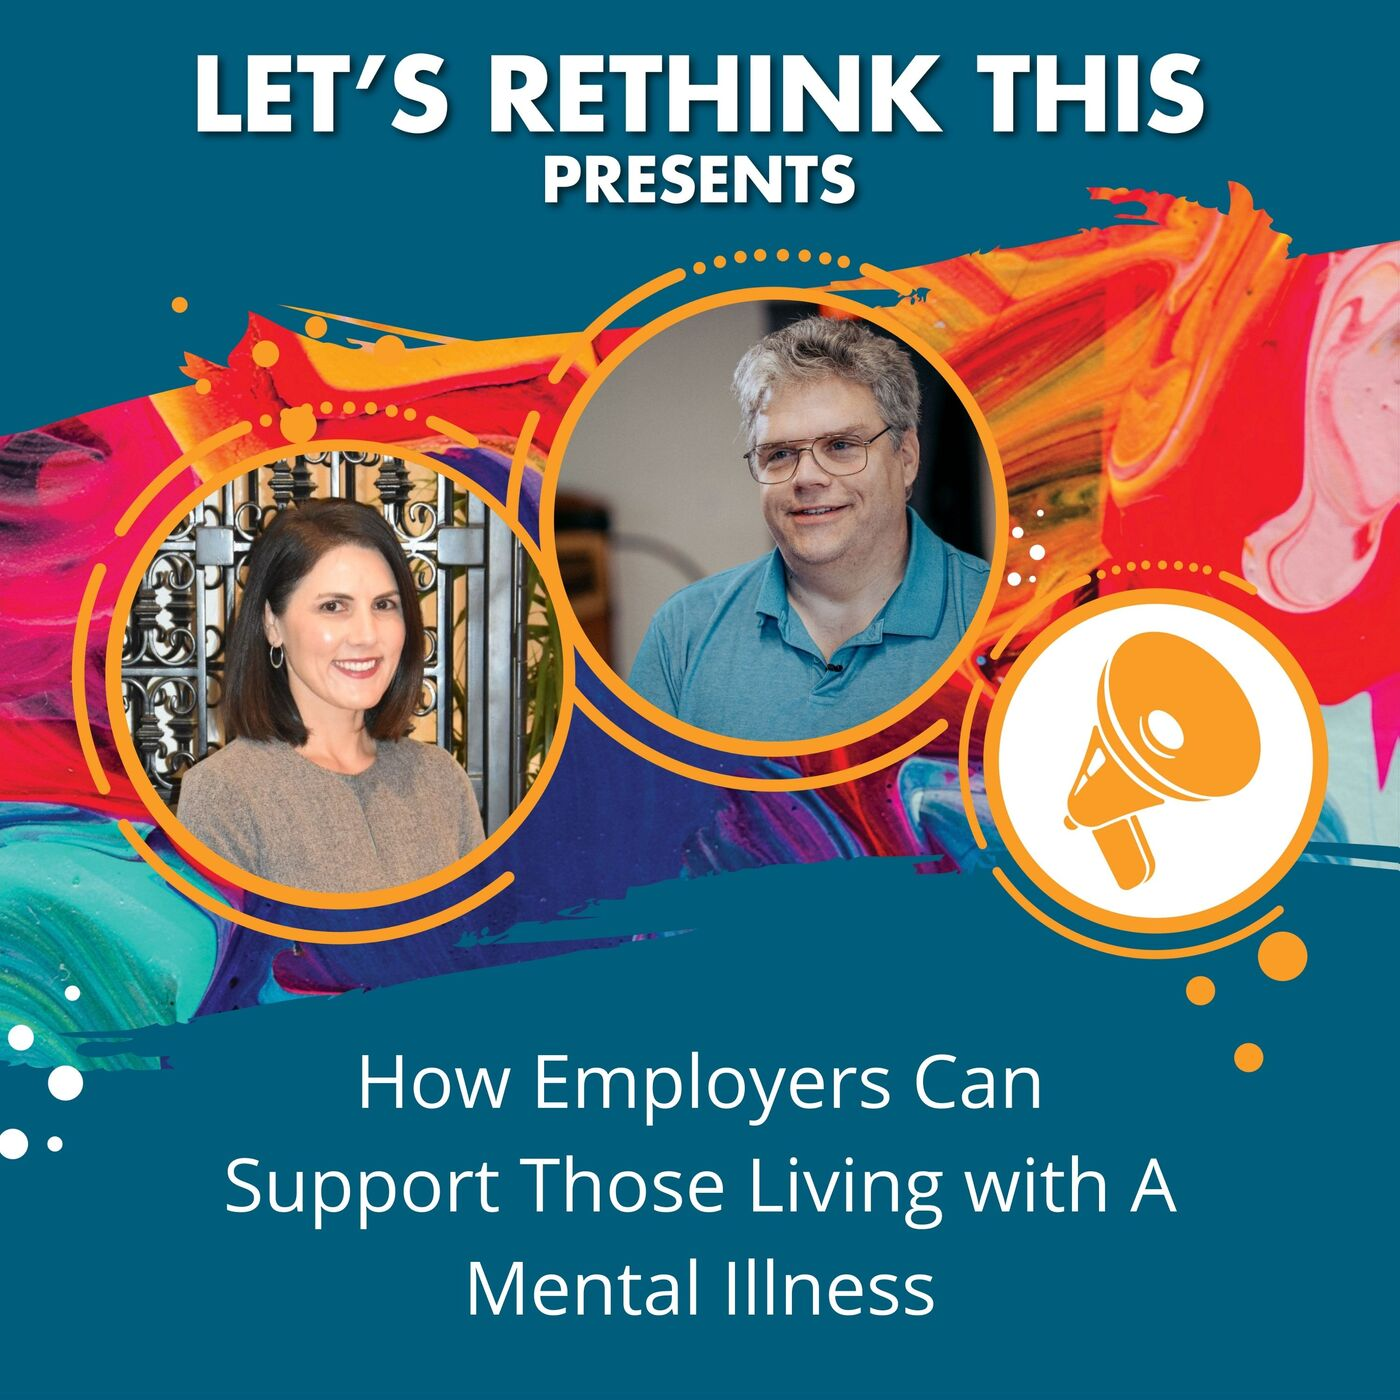 How Employers Can Support Those Living with A Mental Illness